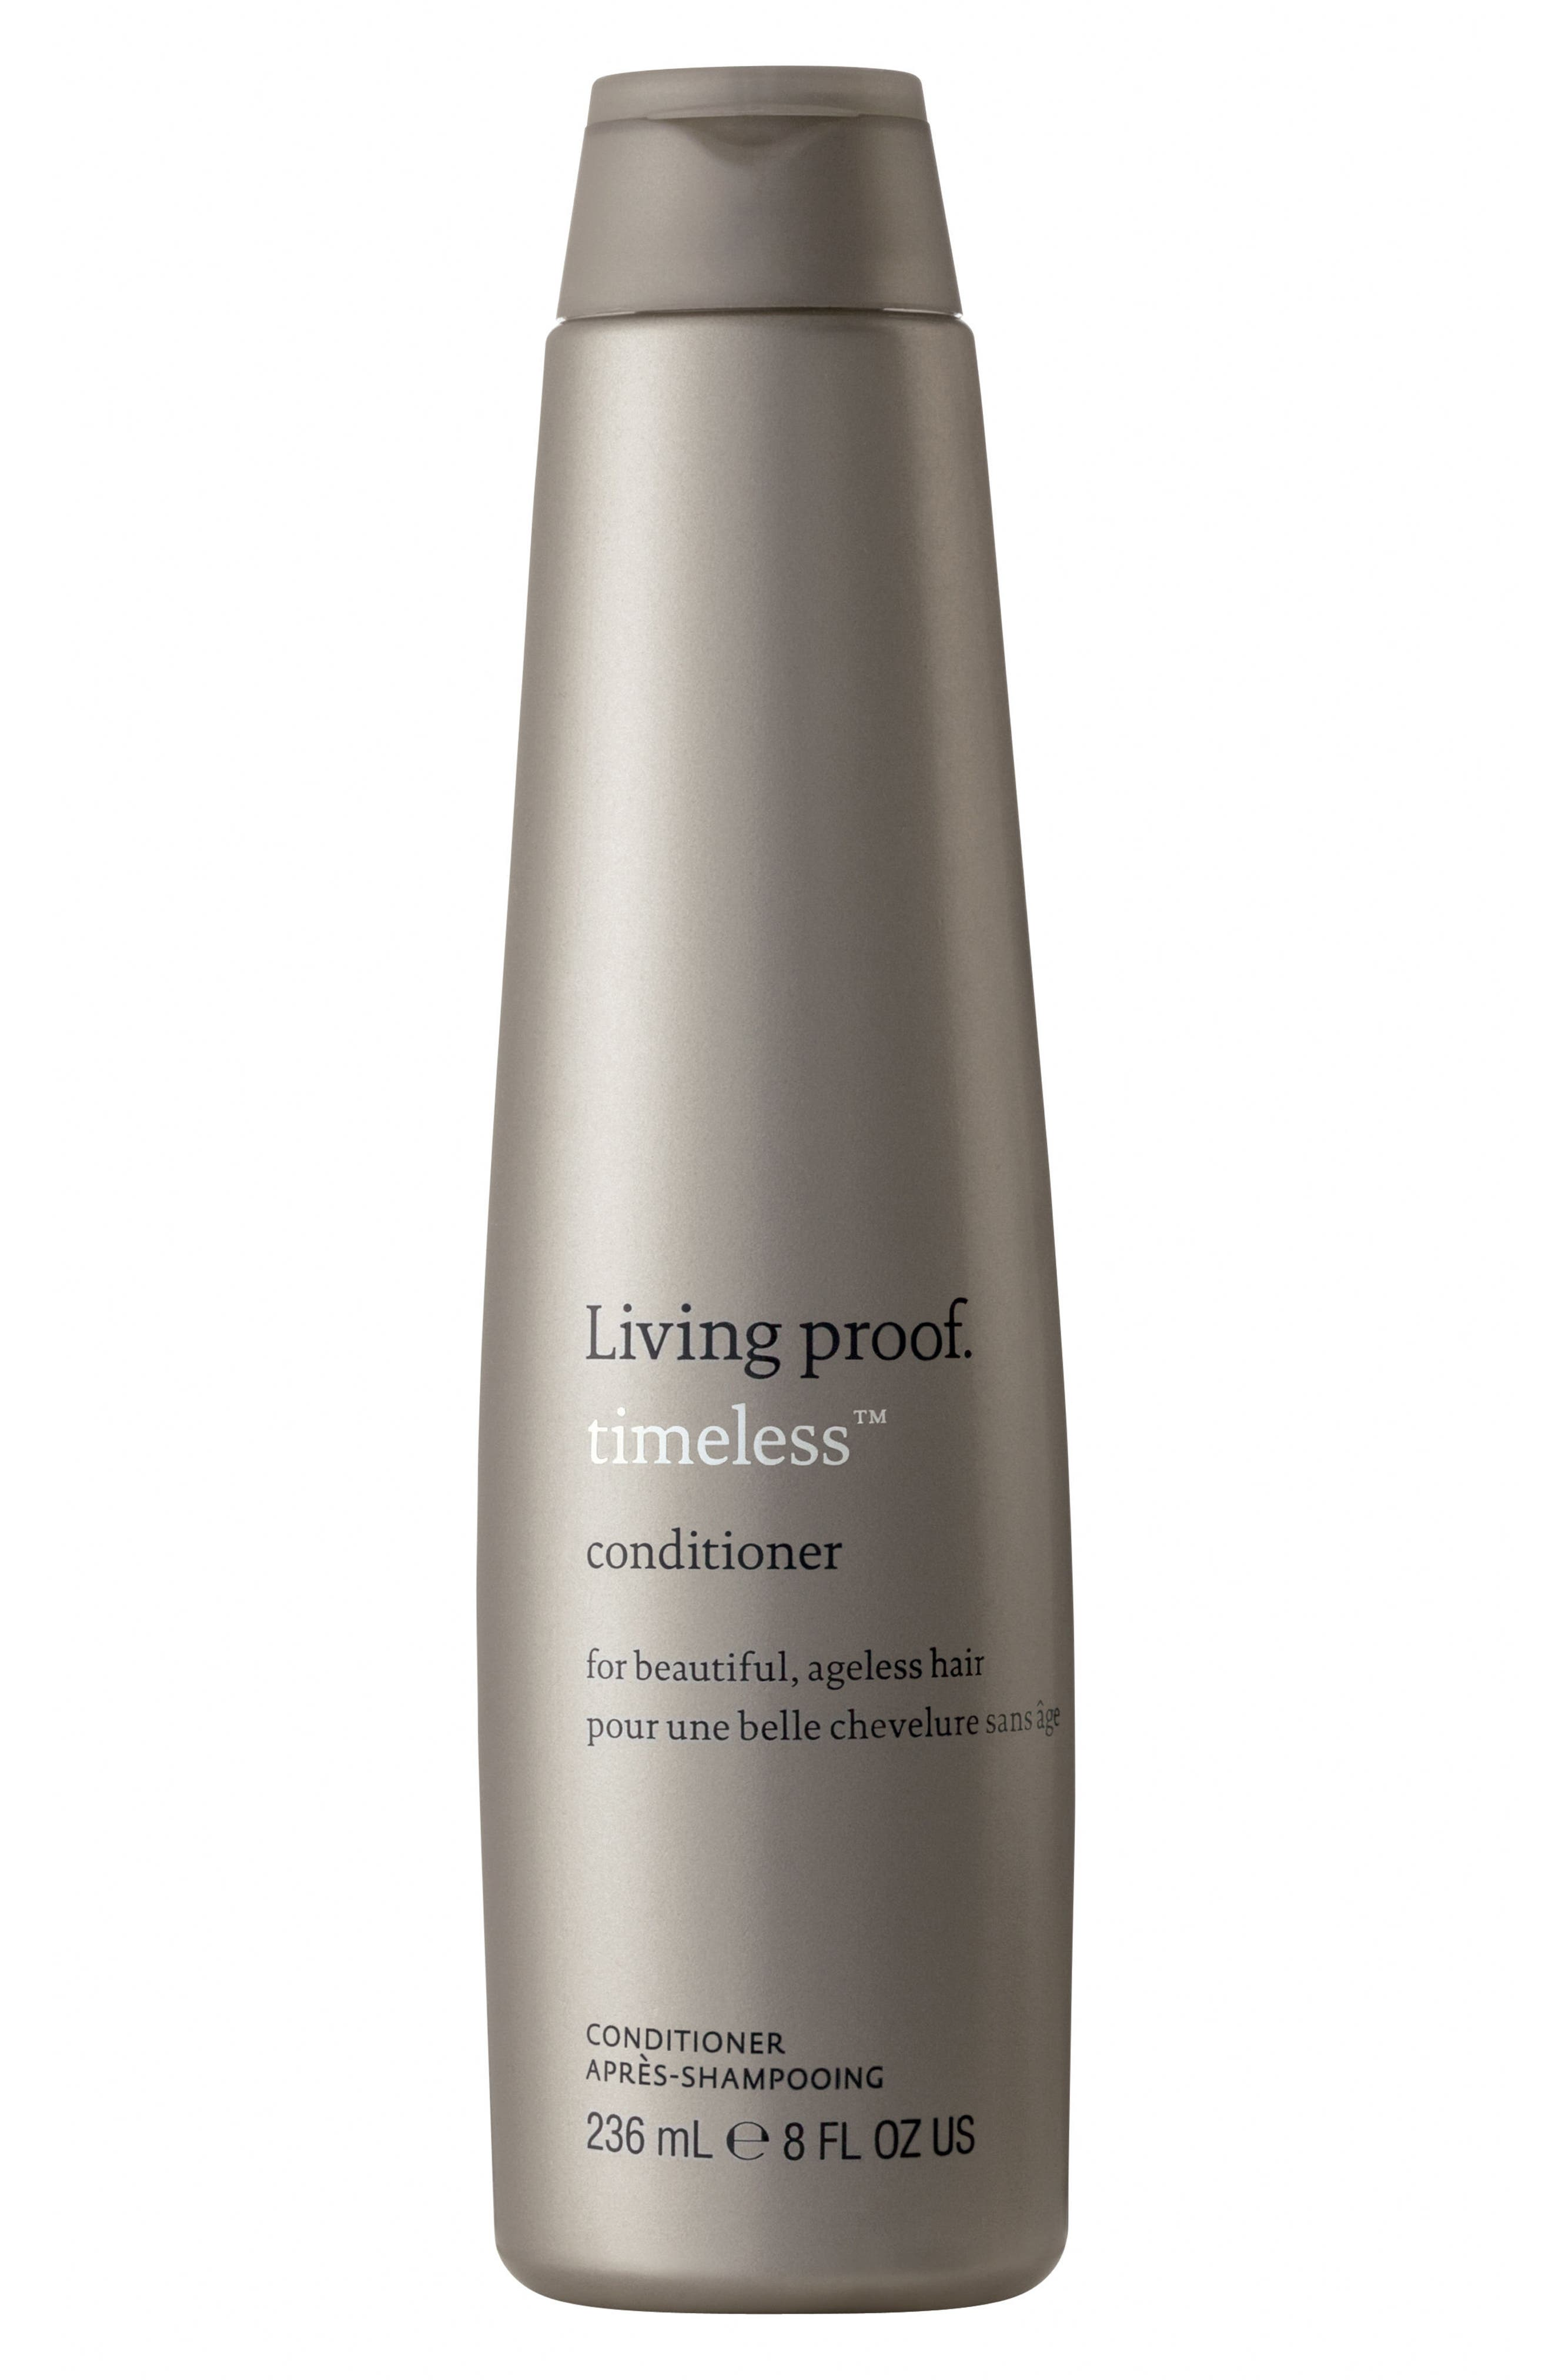 Alternate Image 1 Selected - Living proof® Timeless Conditioner